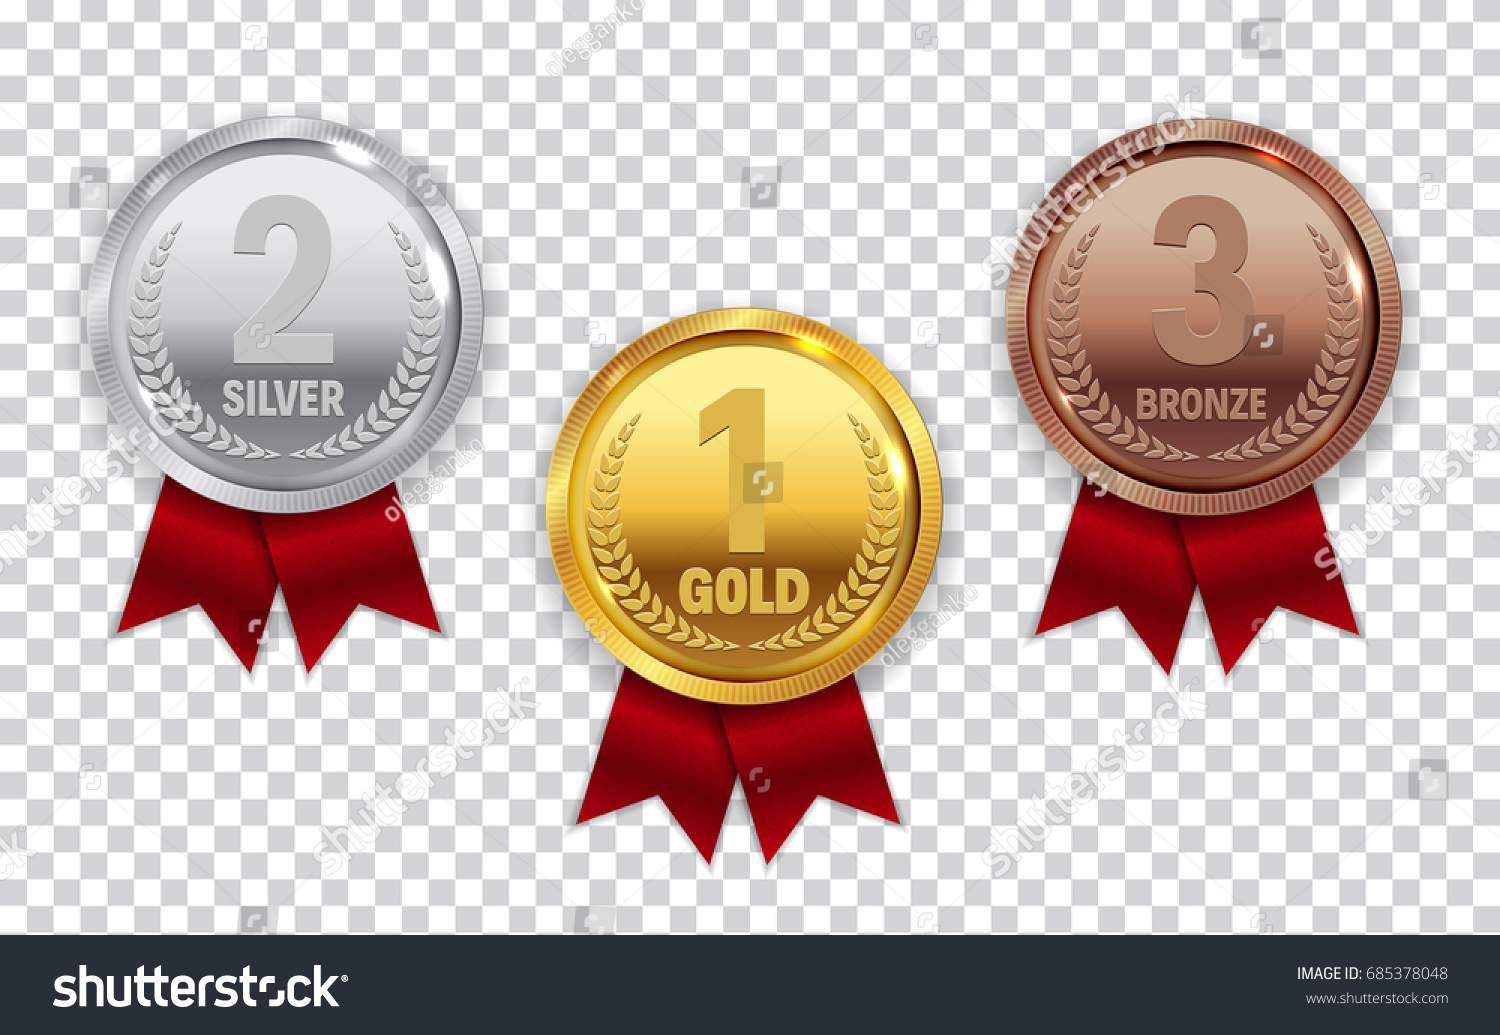 champion gold silver bronze medal red stock vector. Black Bedroom Furniture Sets. Home Design Ideas